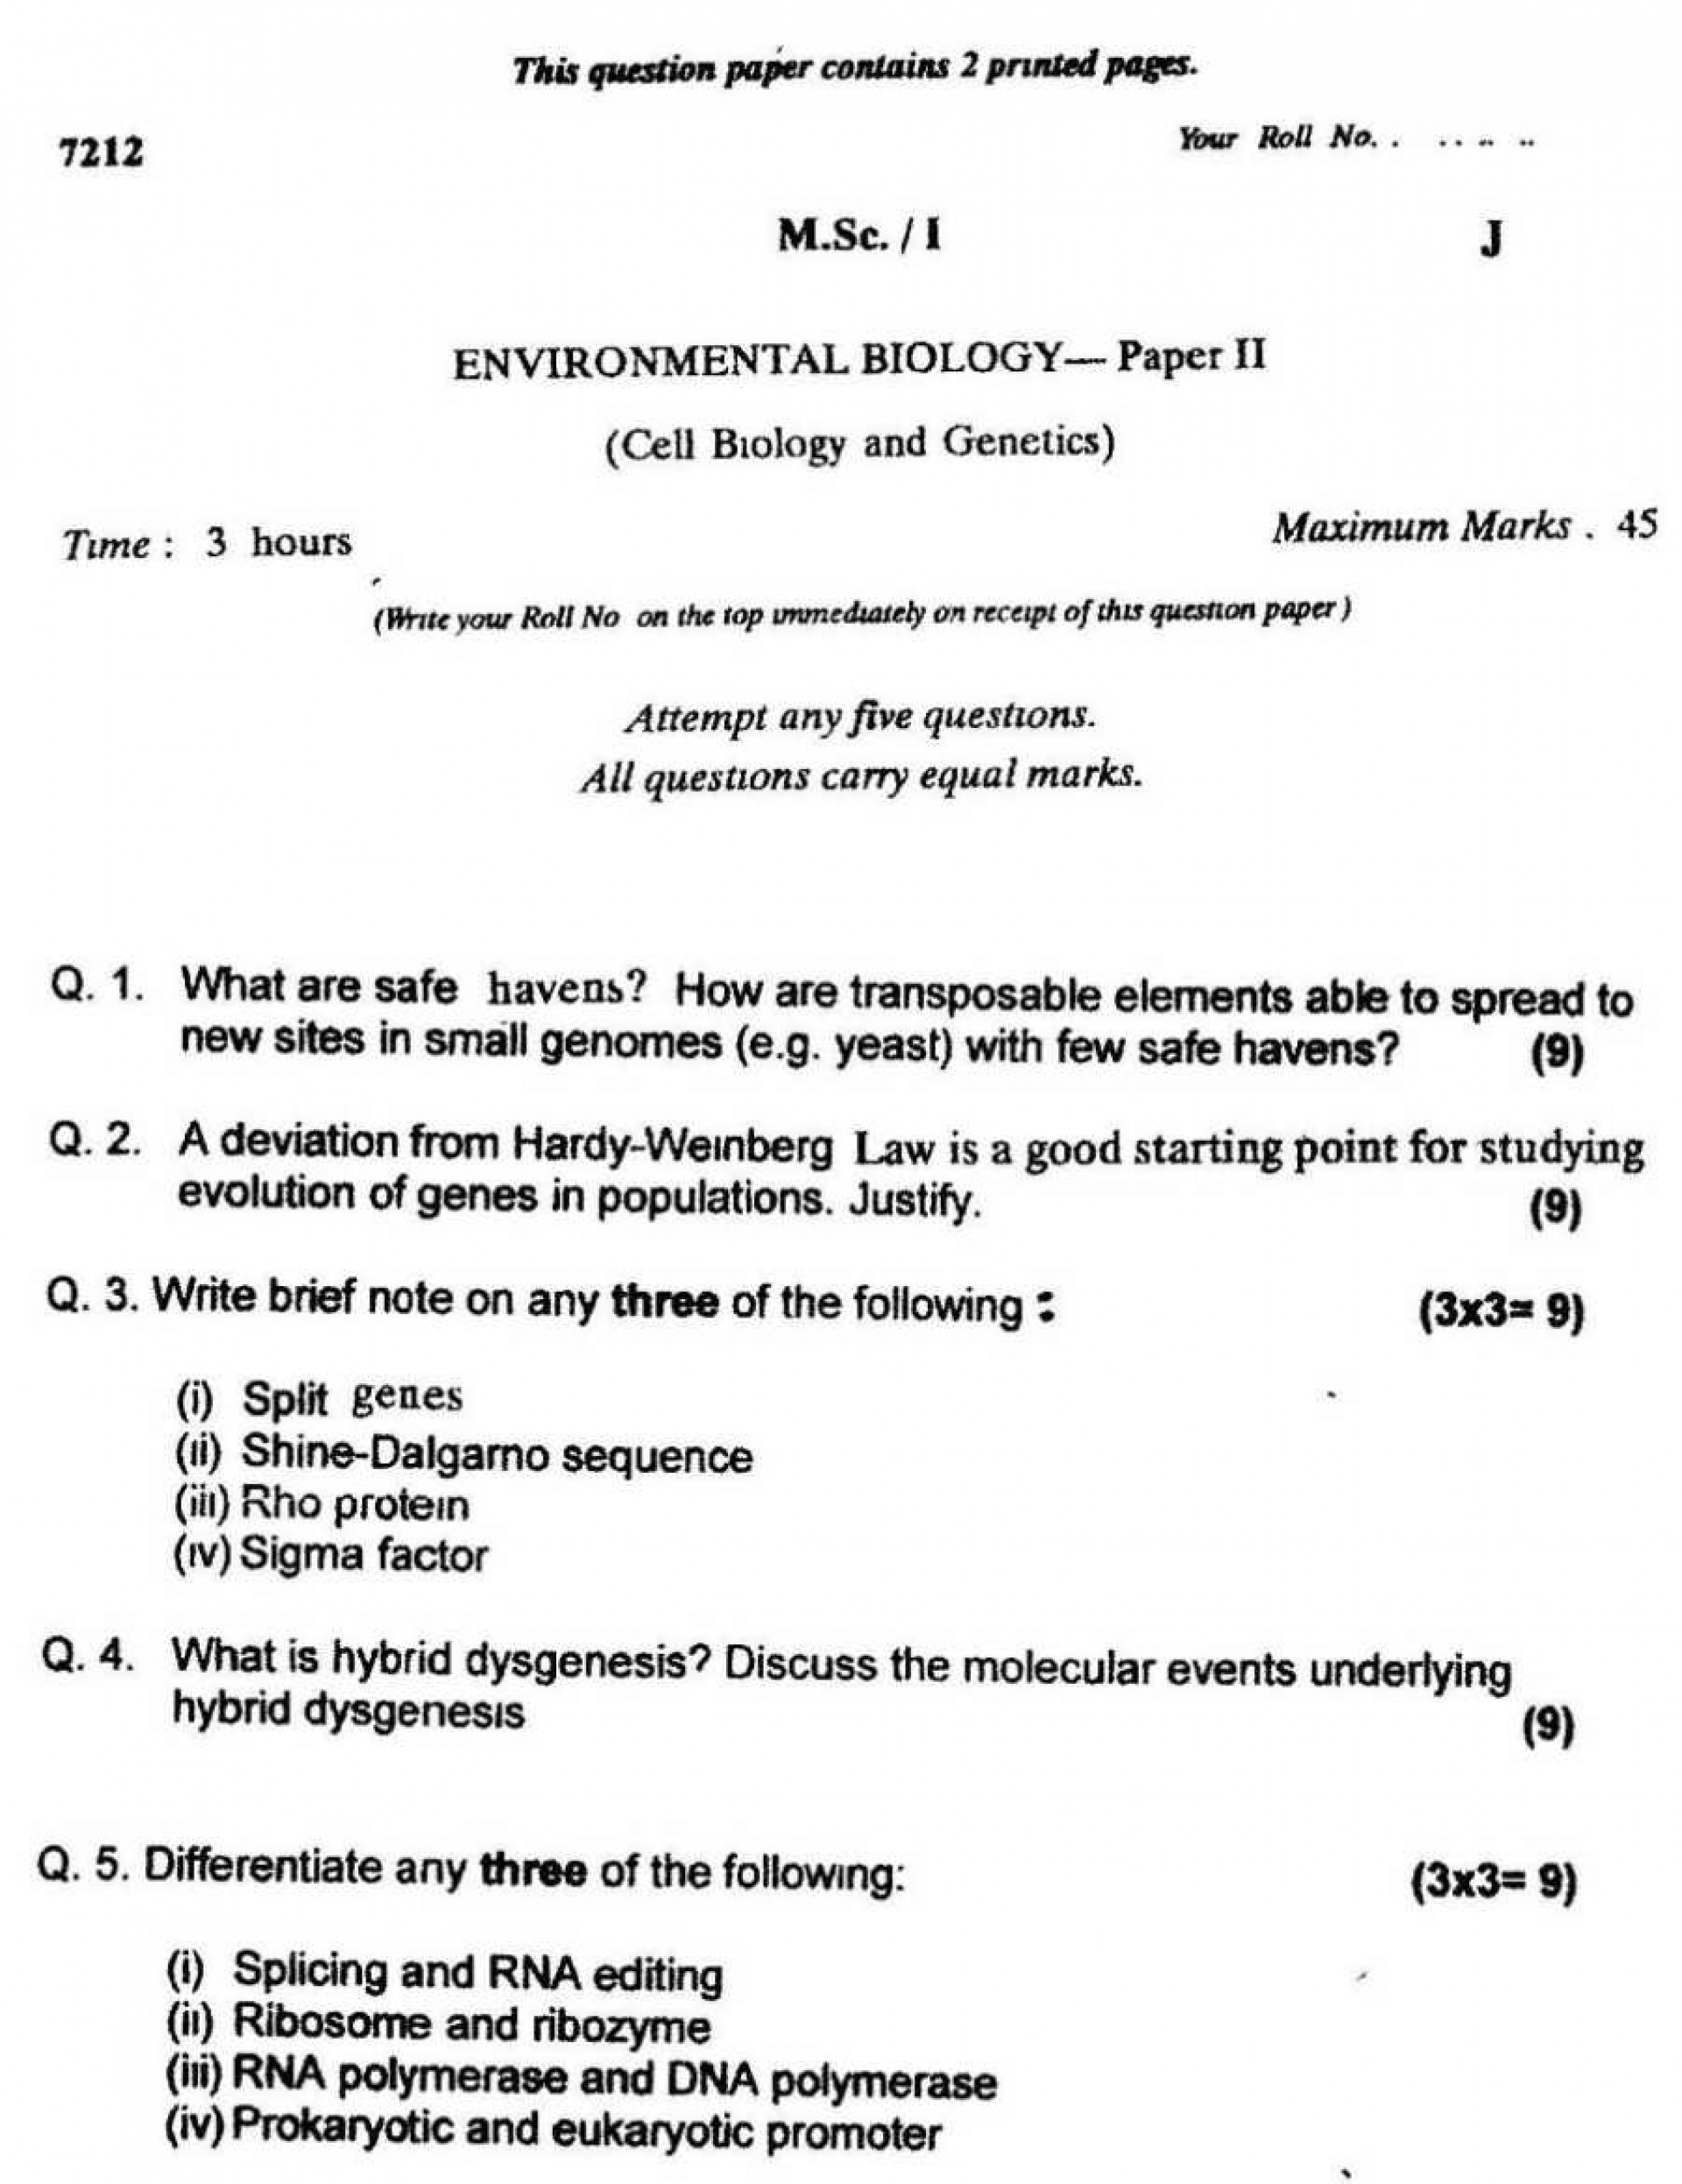 012 Delhi University M Sc Environmental Biology 1st Year Previous Years Question Pap Research Paper Surprising Topics 1920